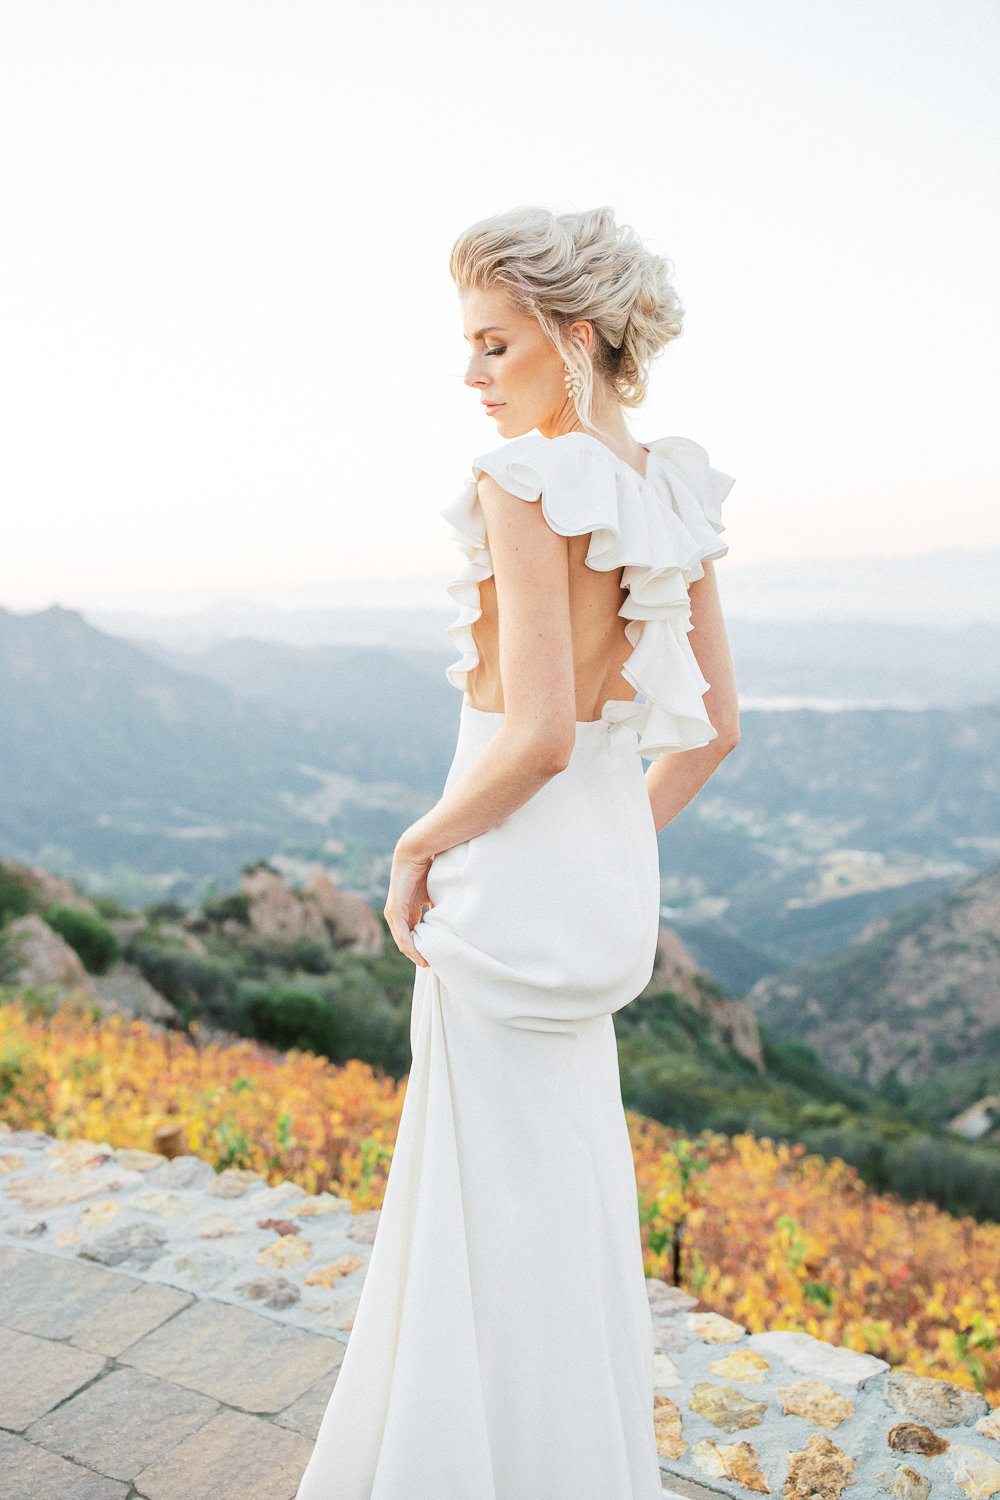 Babsie-Ly-Photography-Malibu-Rocky-Oaks-wedding-Alexandra-grecco-the-dress-theory-san-diego-004